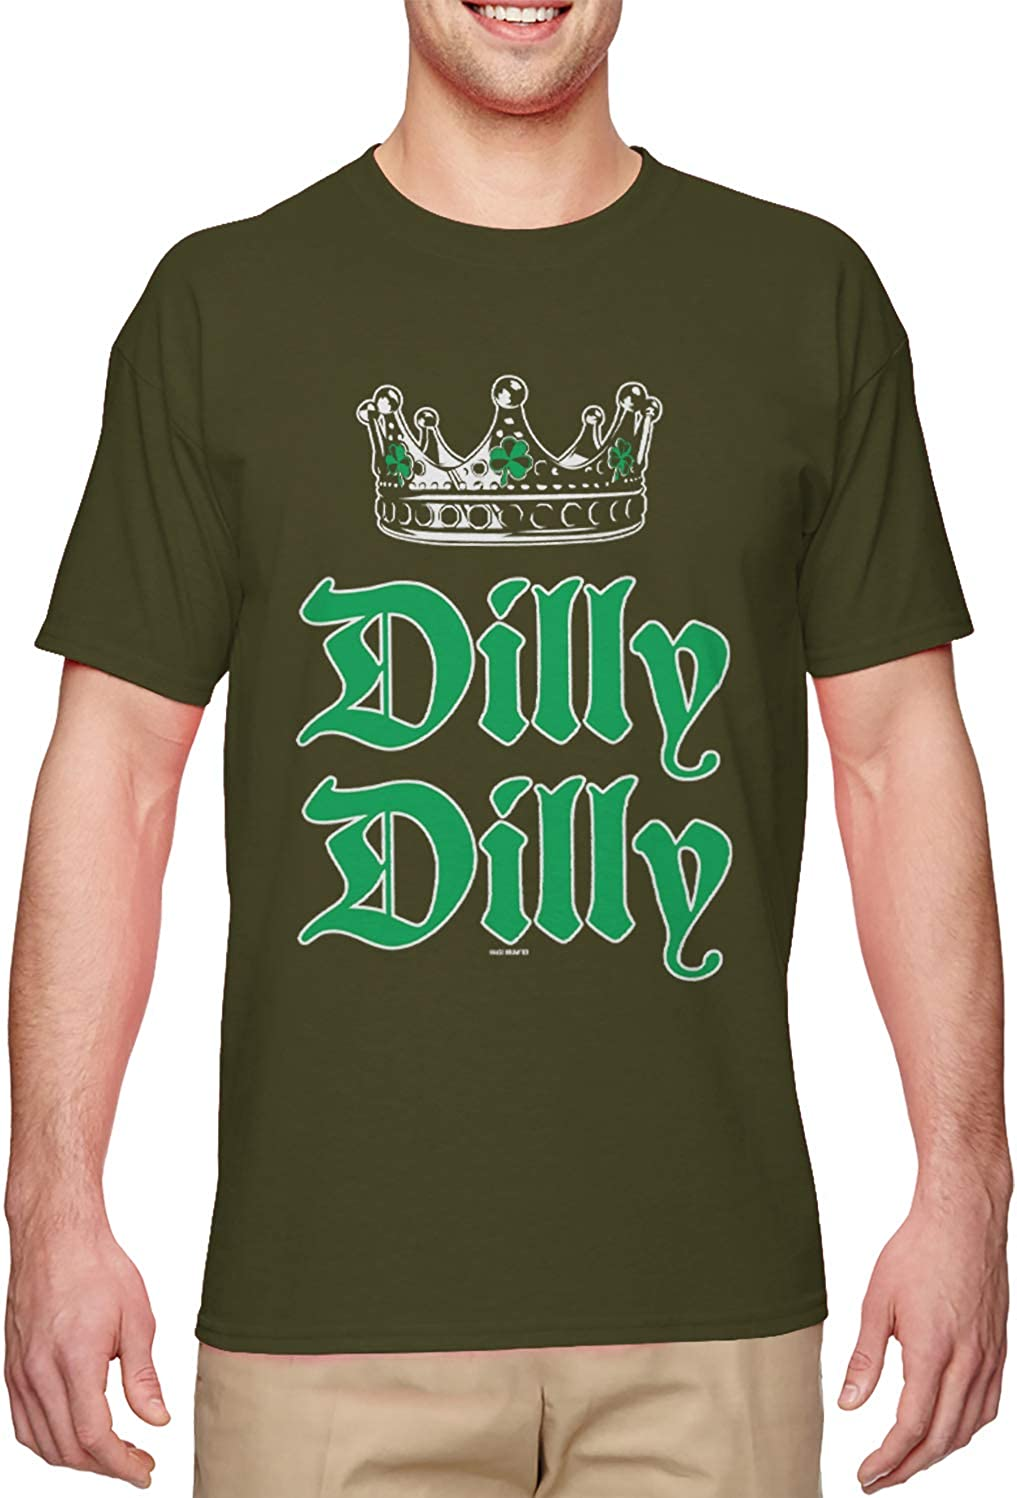 Patrick/'s Day T-Shirt Gift Idea Dilly Dilly Clover ST